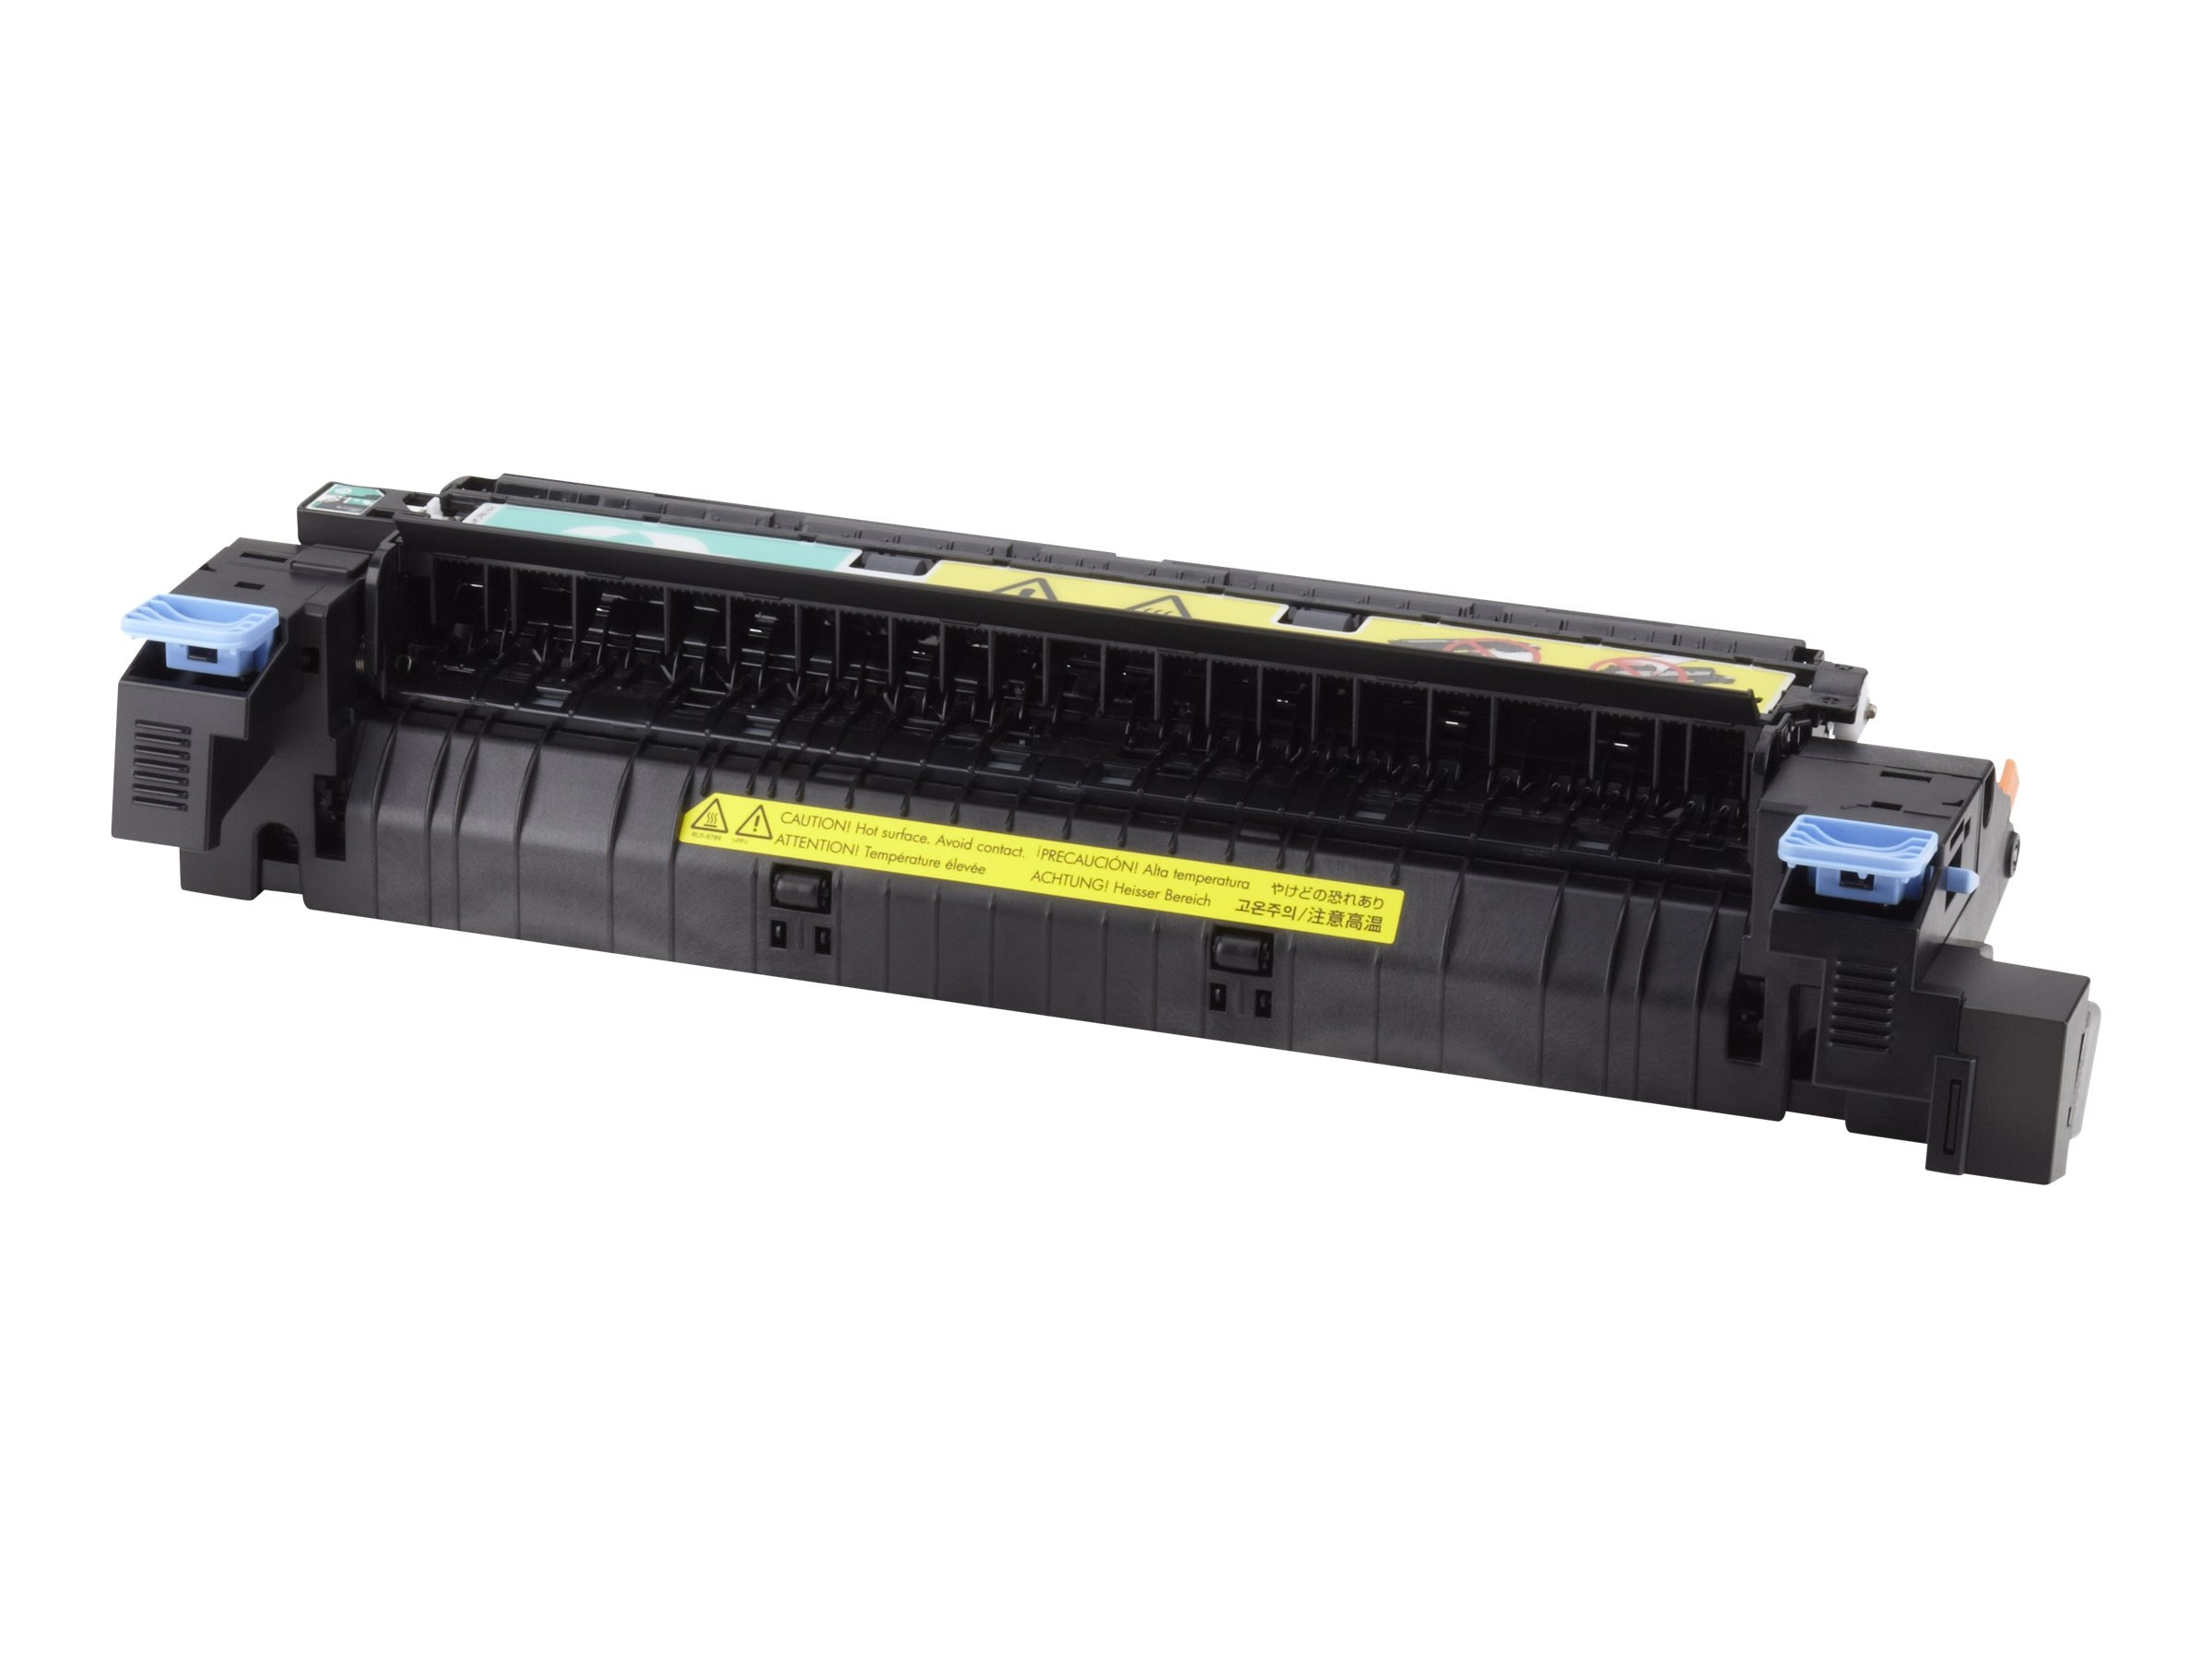 HP LaserJet 110V Maintenance Kit for HP LaserJet Enterprise 700 color MFP M775 Series